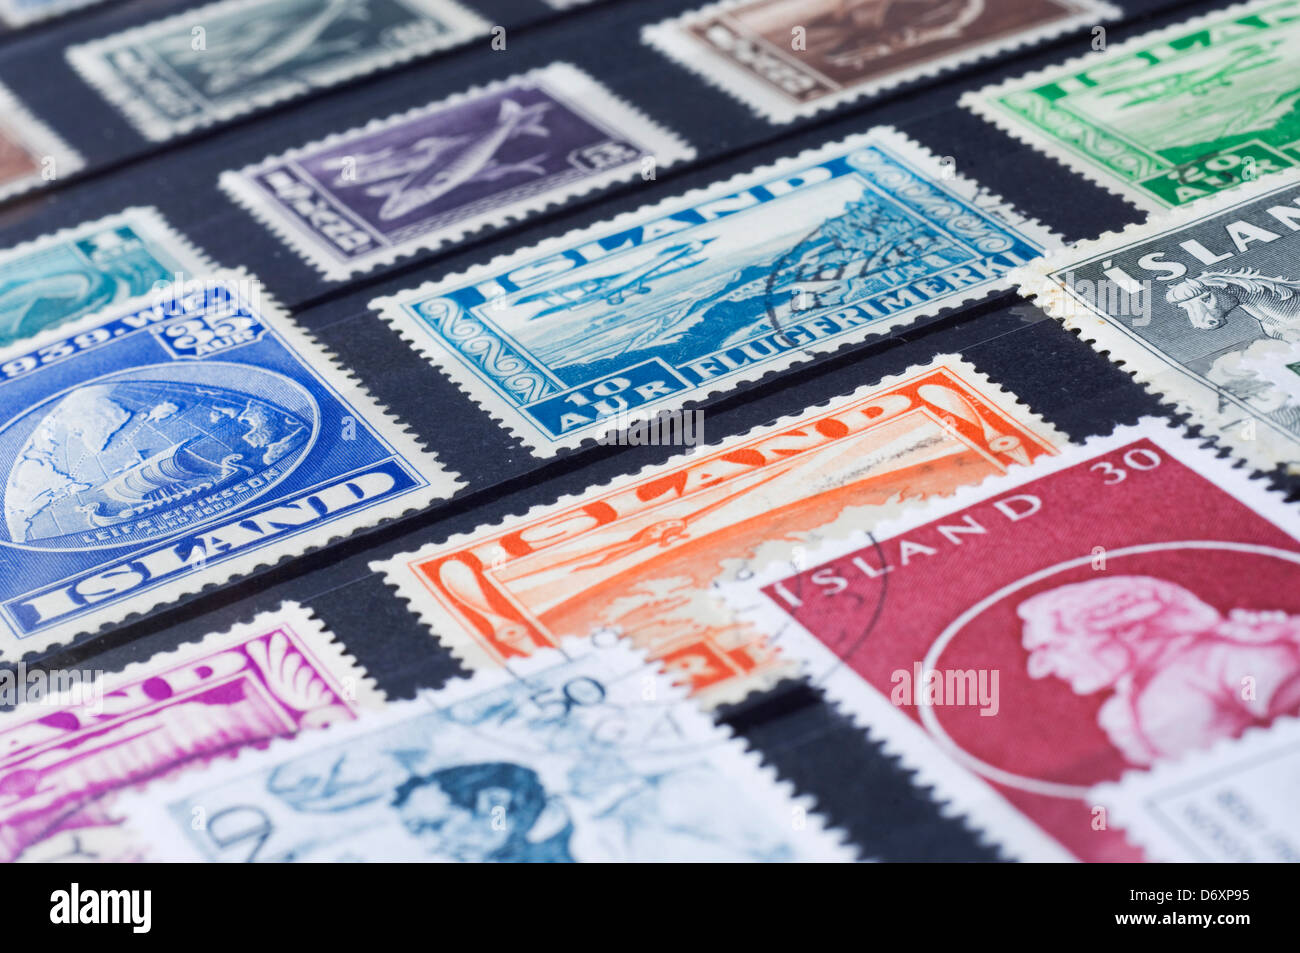 Icelandic stamp collection - Stock Image